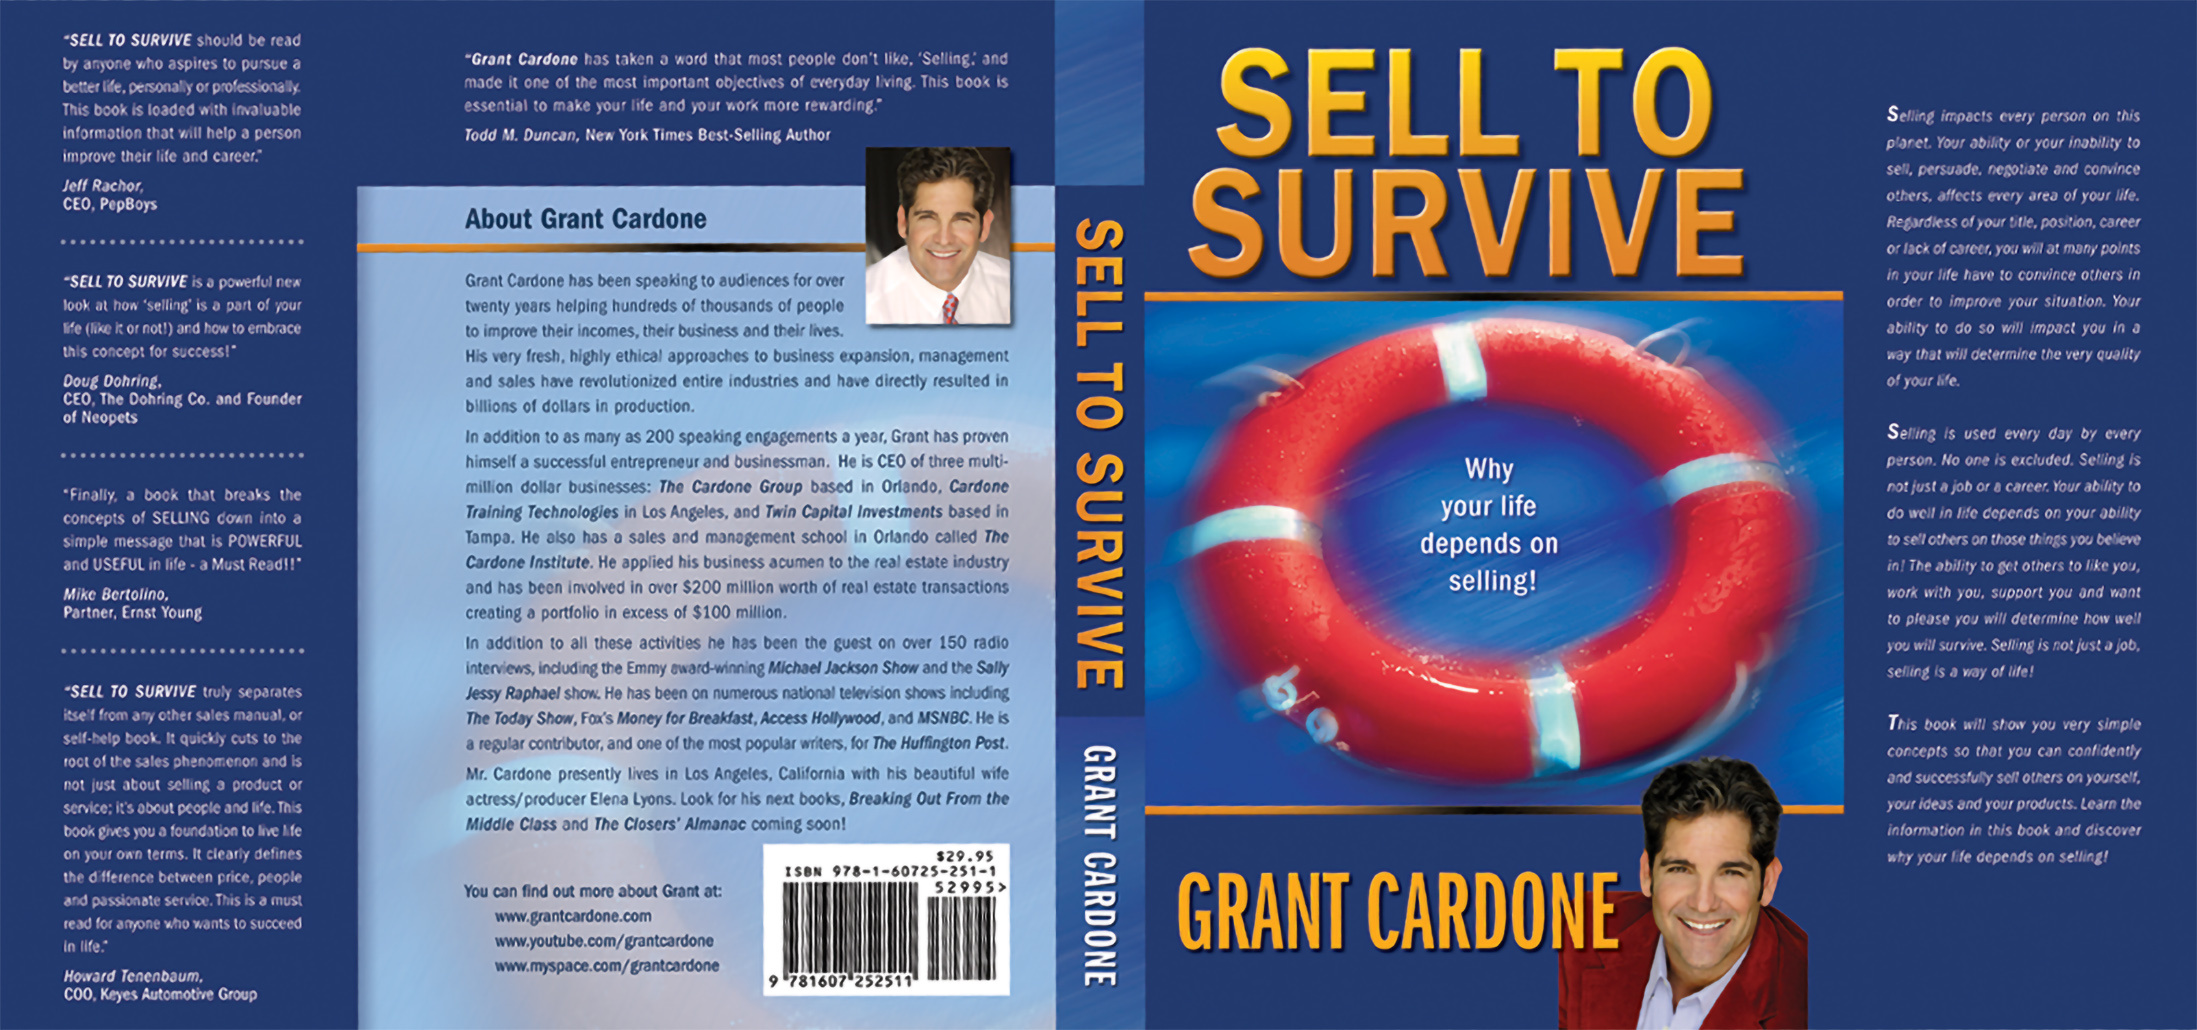 Sell To Survive | Grant Cardone Dust Jacket